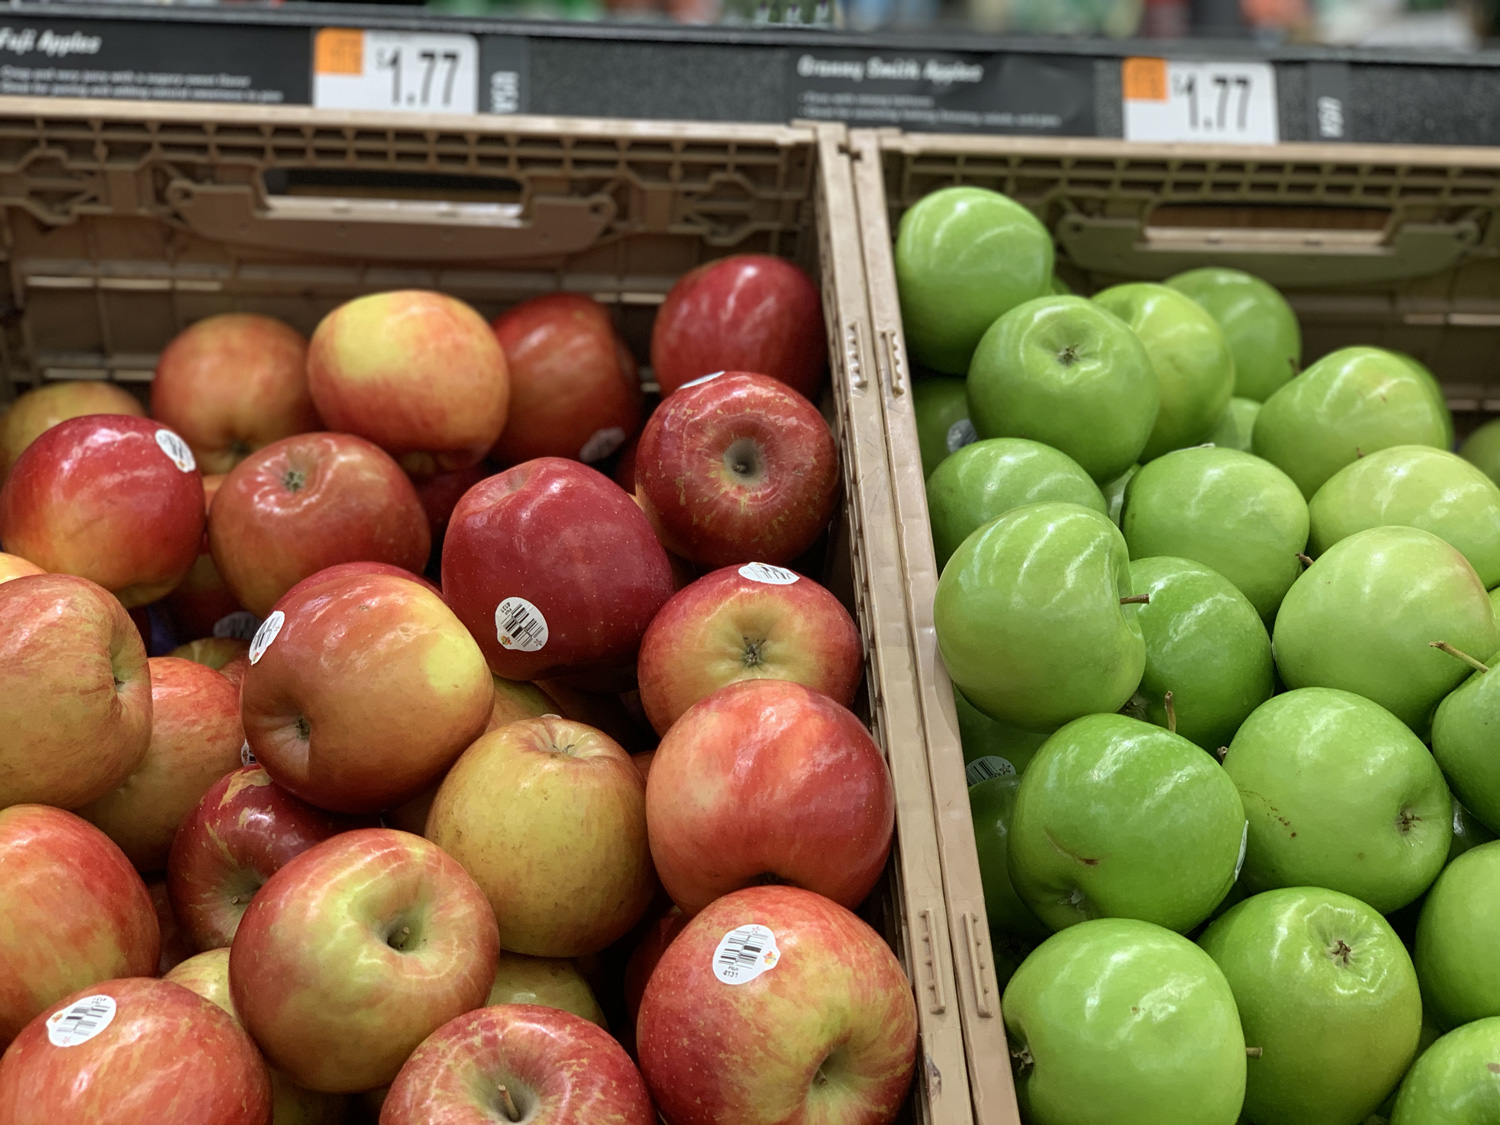 Walmart green and red apples